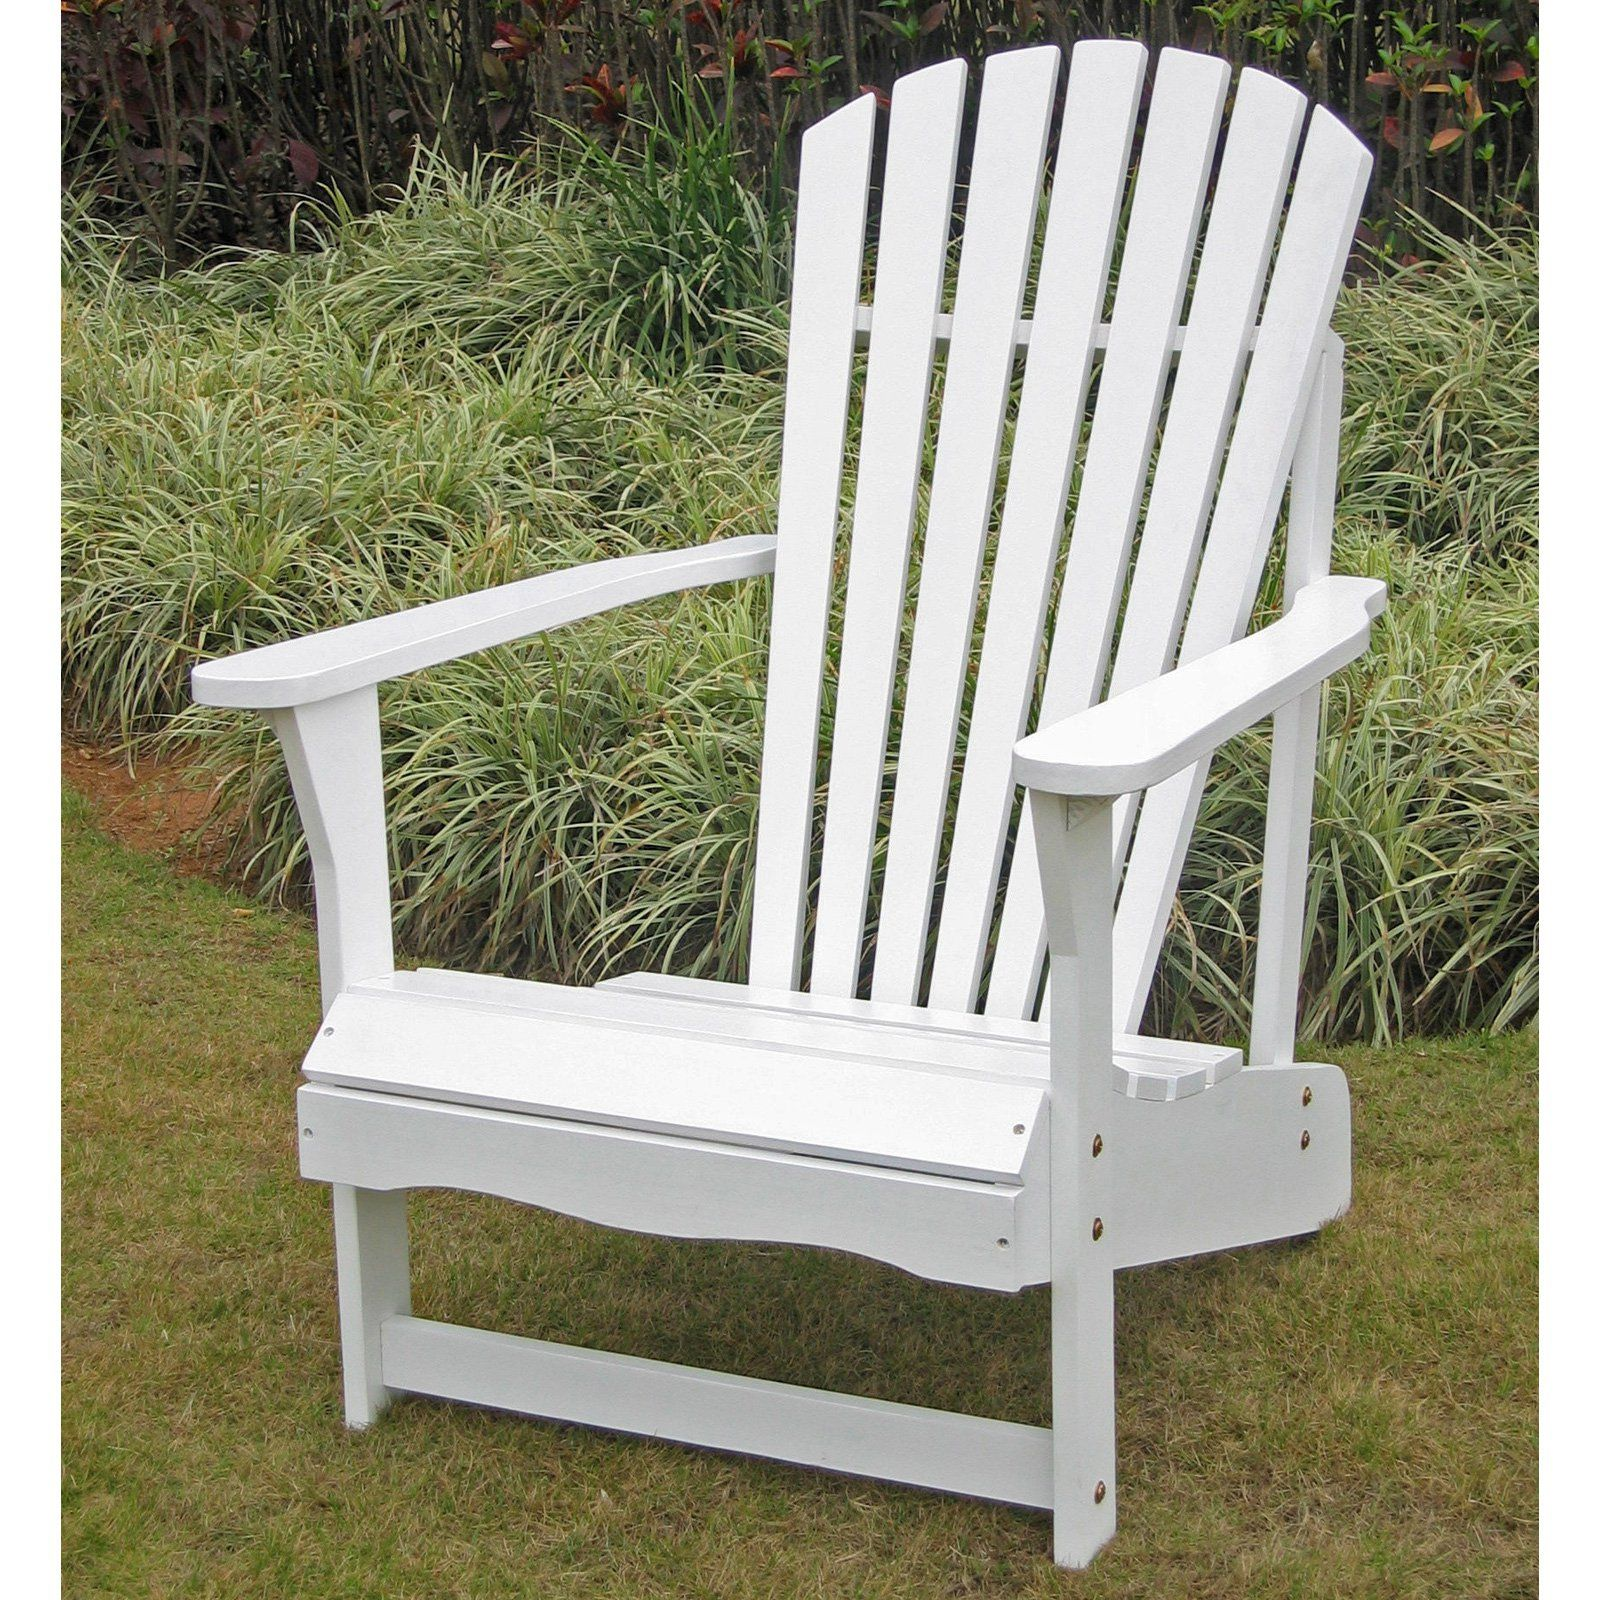 70 harbor freight adirondack chairs best home furniture